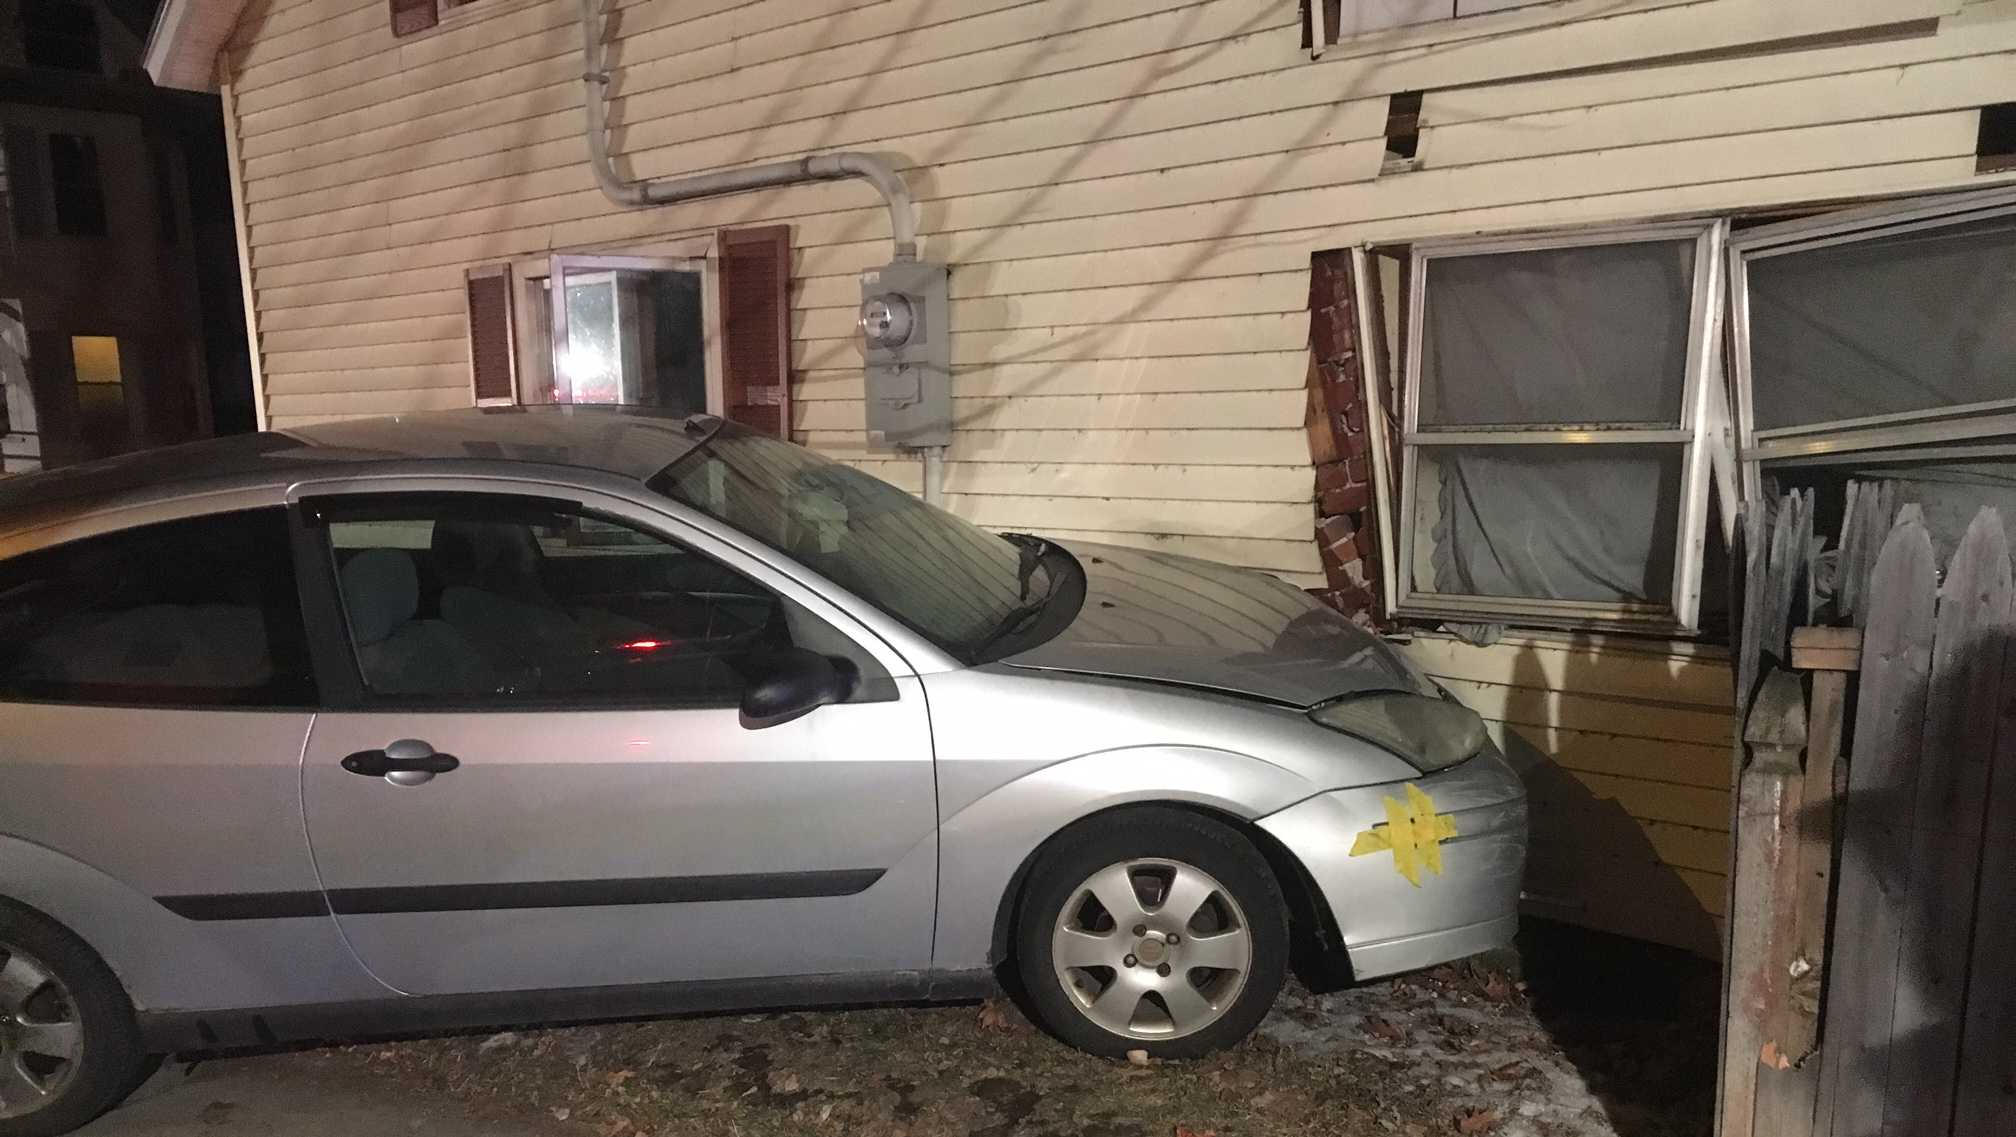 A vehicle collided with a home in Burlington Monday night, causing structural damage.